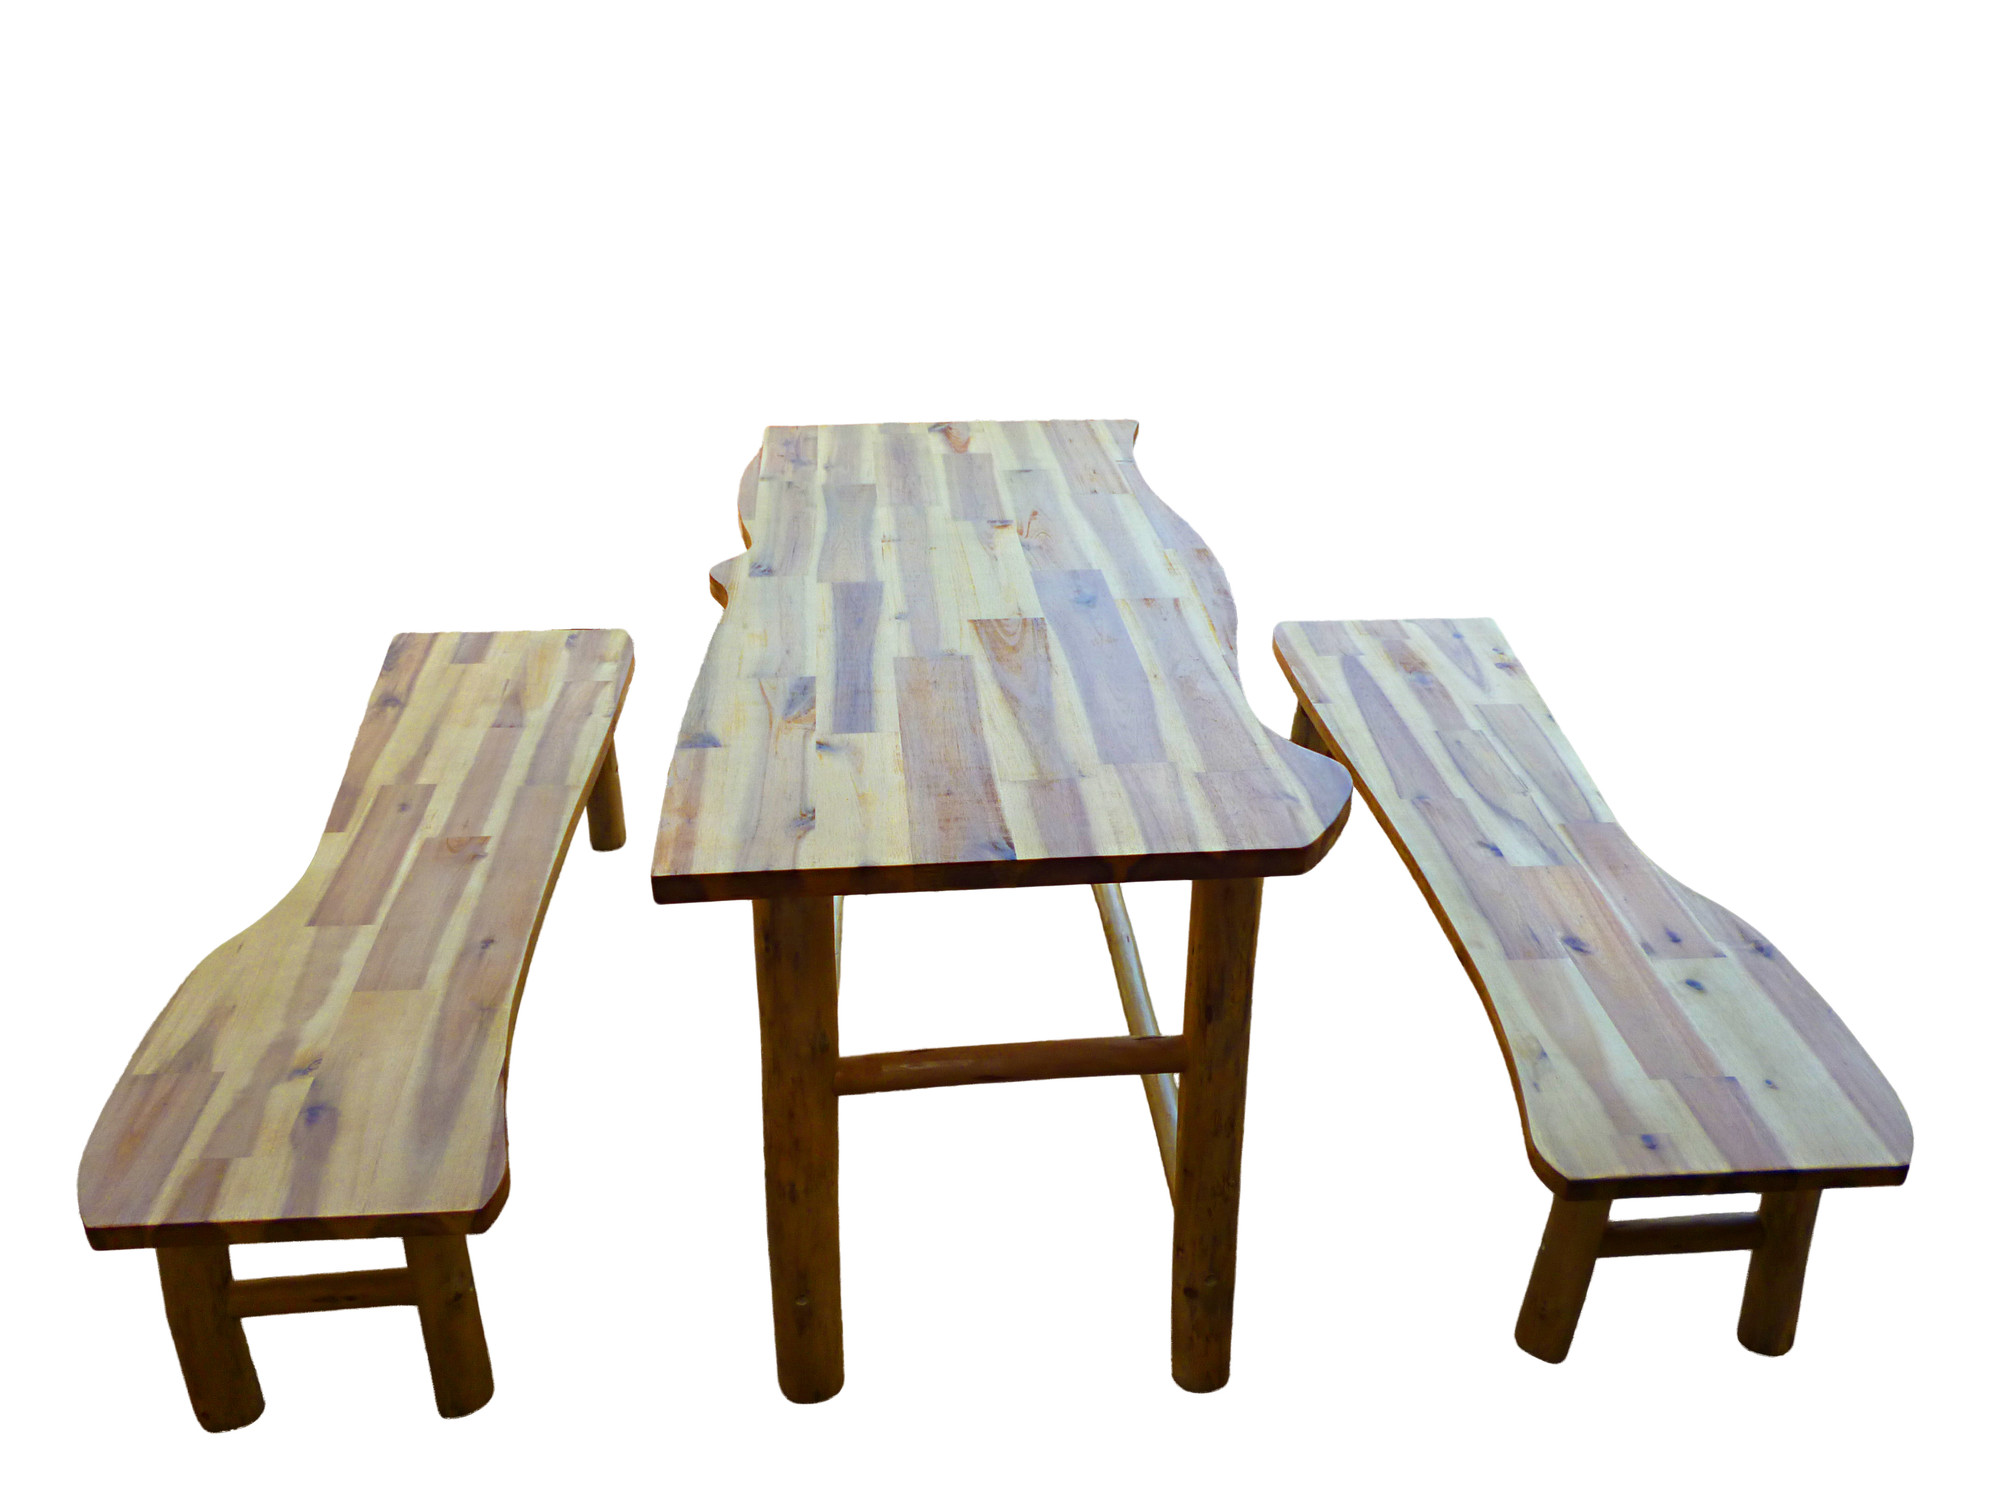 sku qtoy1265 dark tree table and bench set is also sometimes listed under the following numbers